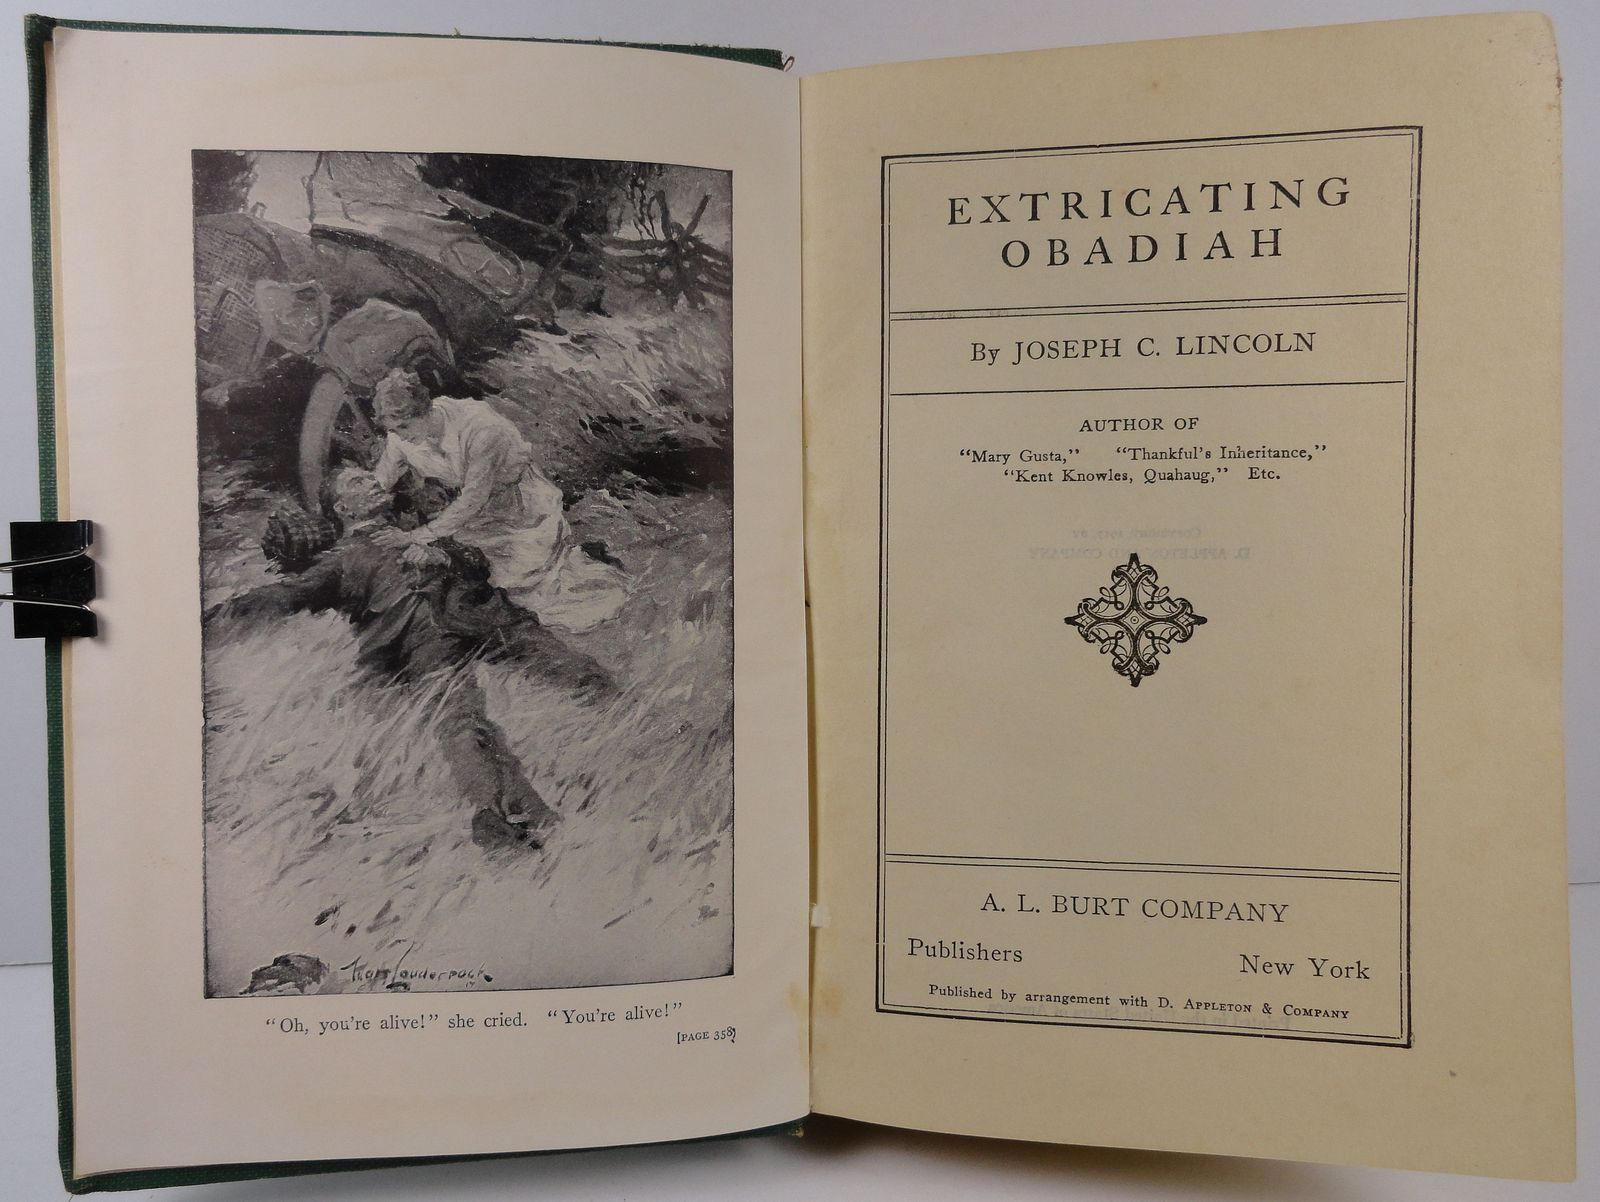 Extricating Obadiah by Joseph C. Lincoln 1917 A. L. Burt